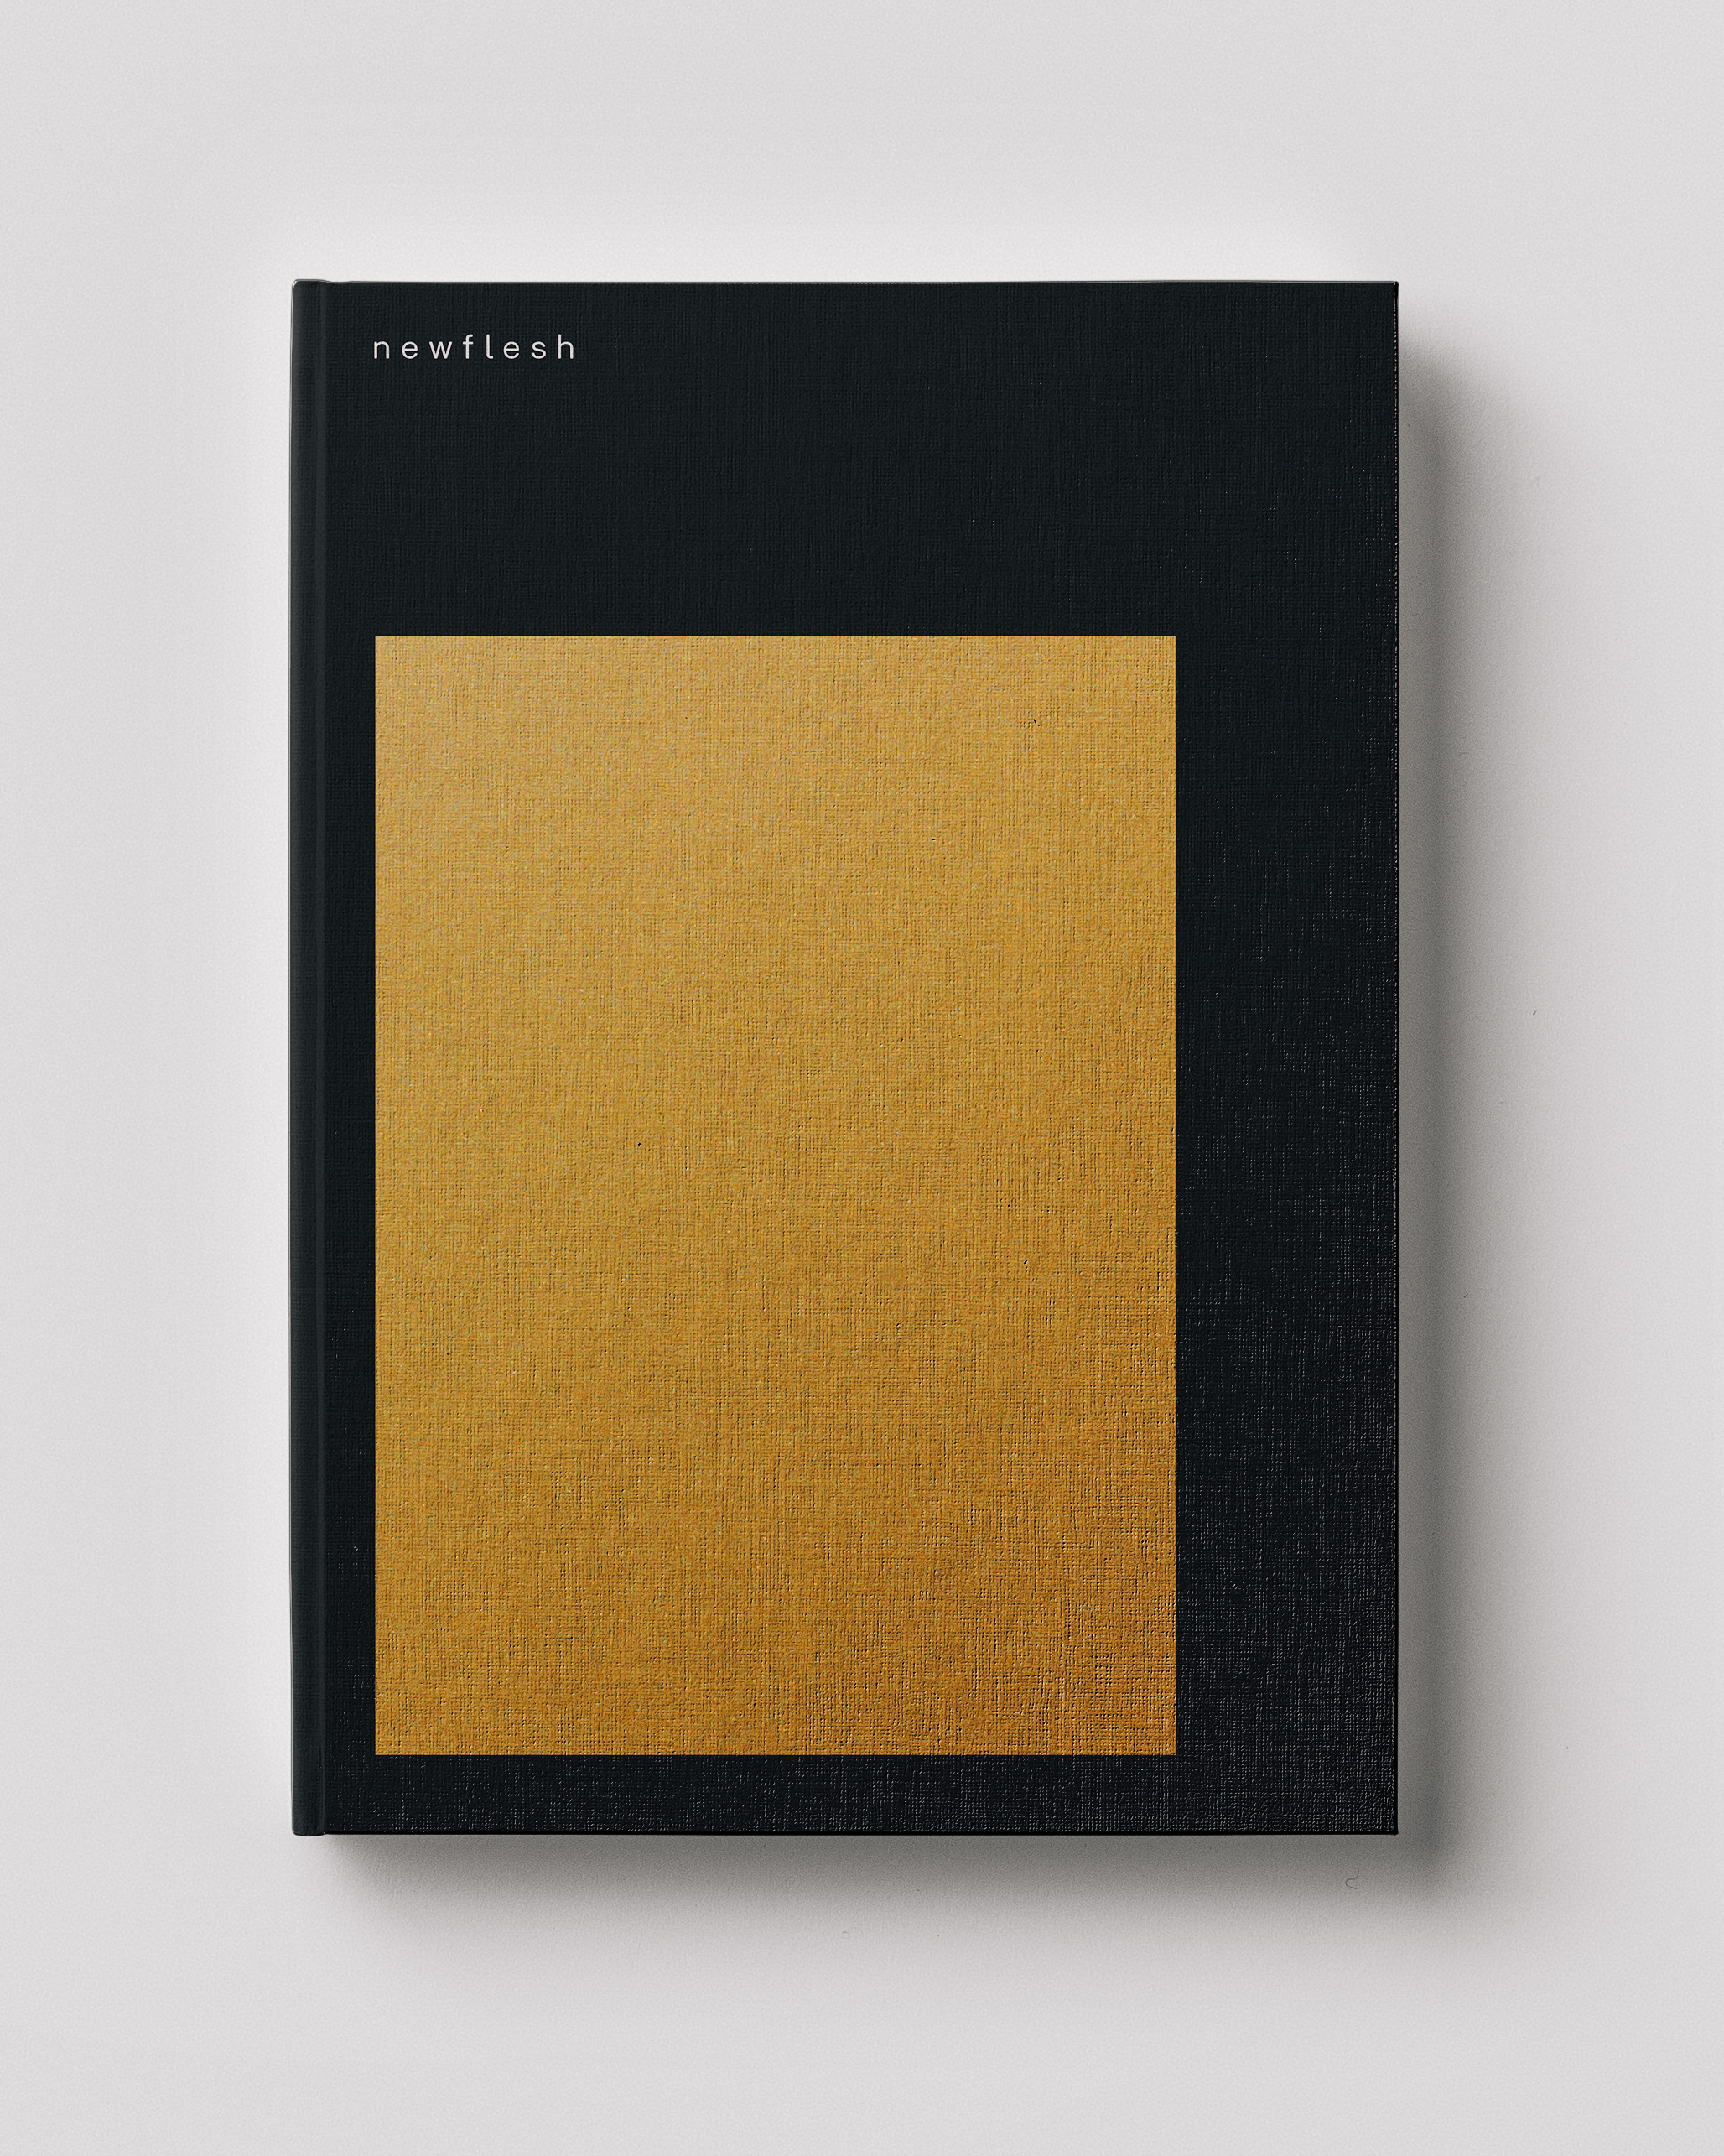 n e w f l e s h Edited by Efrem Zelony-Mindell Texts by Charlotte Cotton and Ash McNelis Published by Gnomic Book